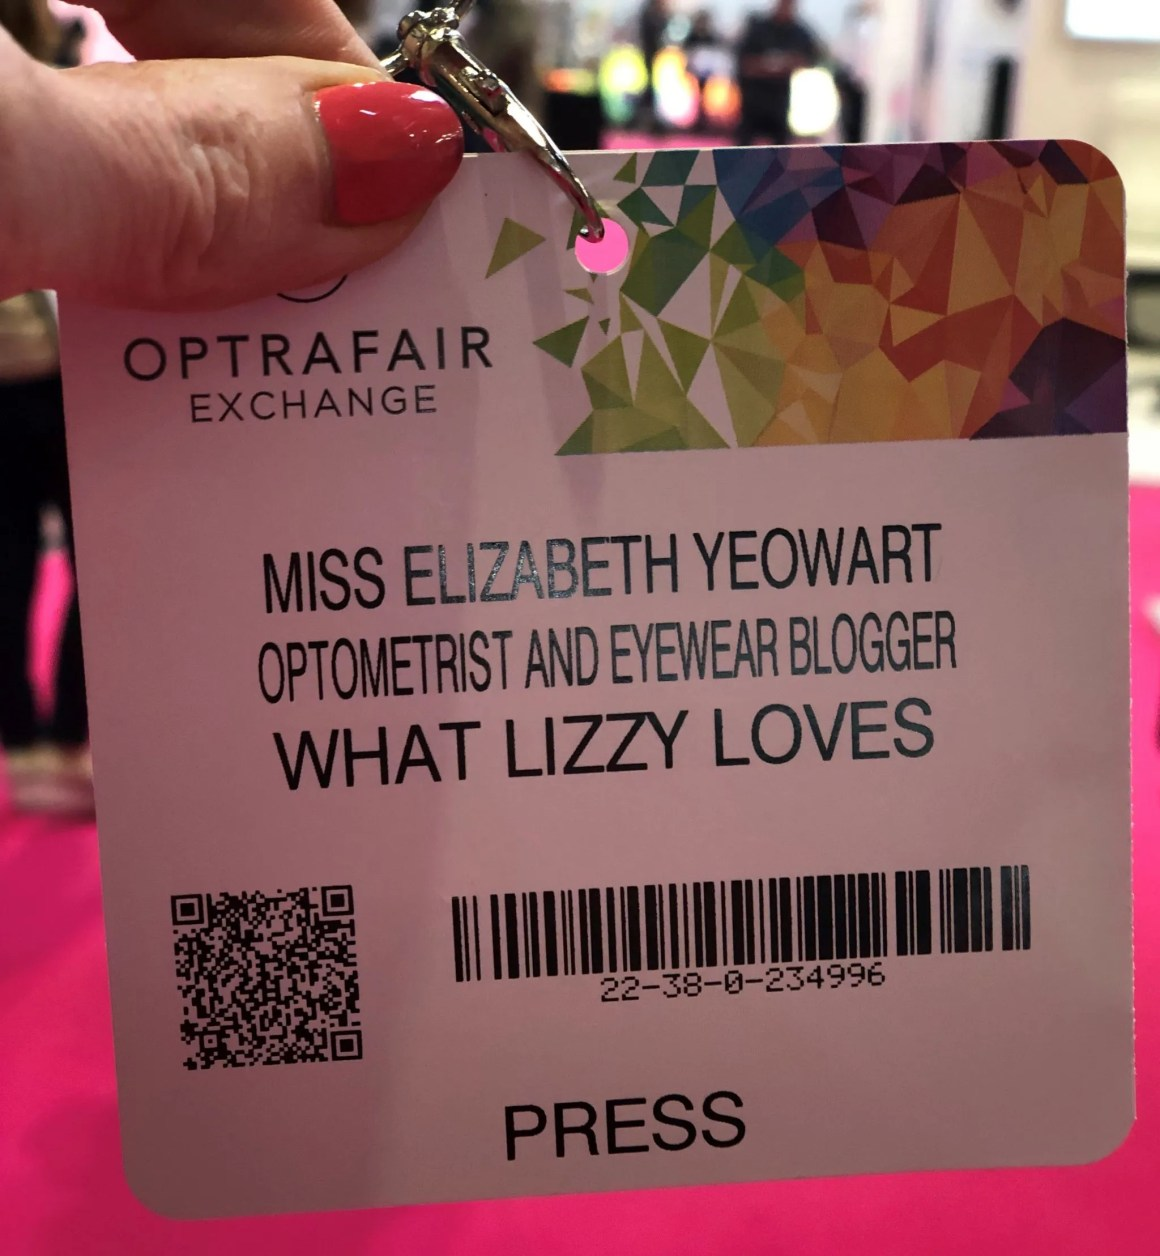 Optrafair Exchange 2019